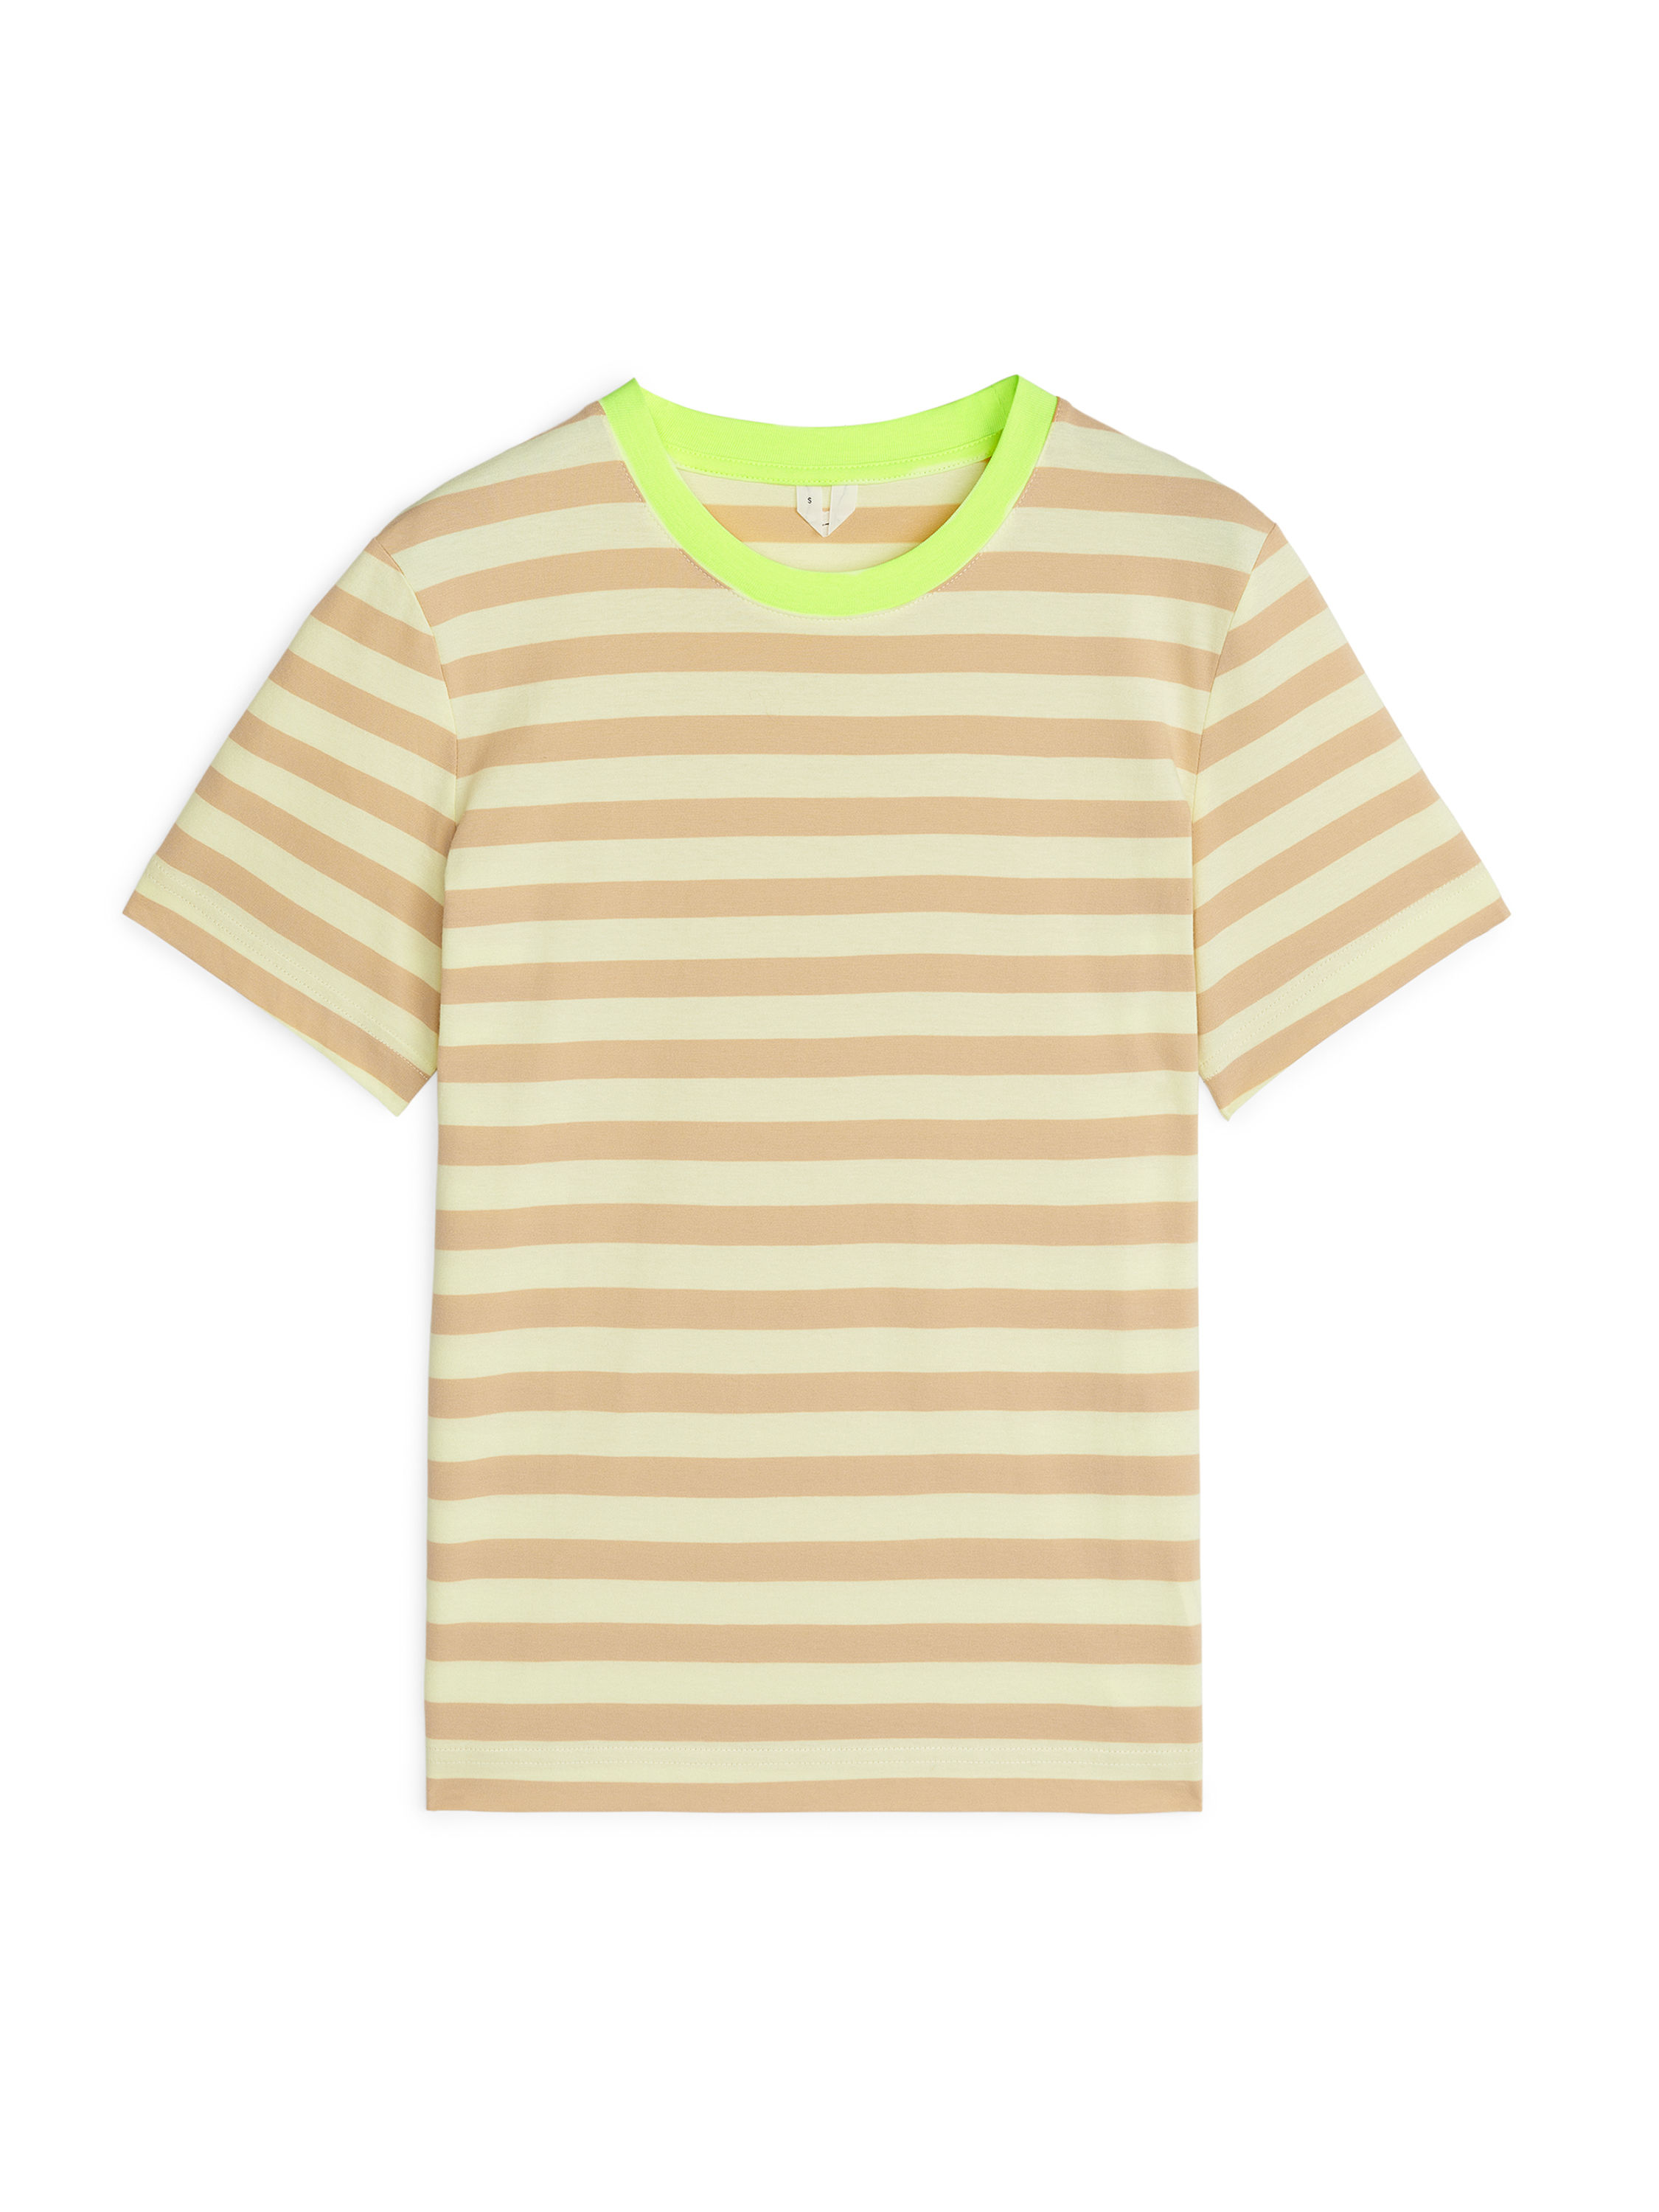 Fabric Swatch image of Arket crew-neck t-shirt in yellow